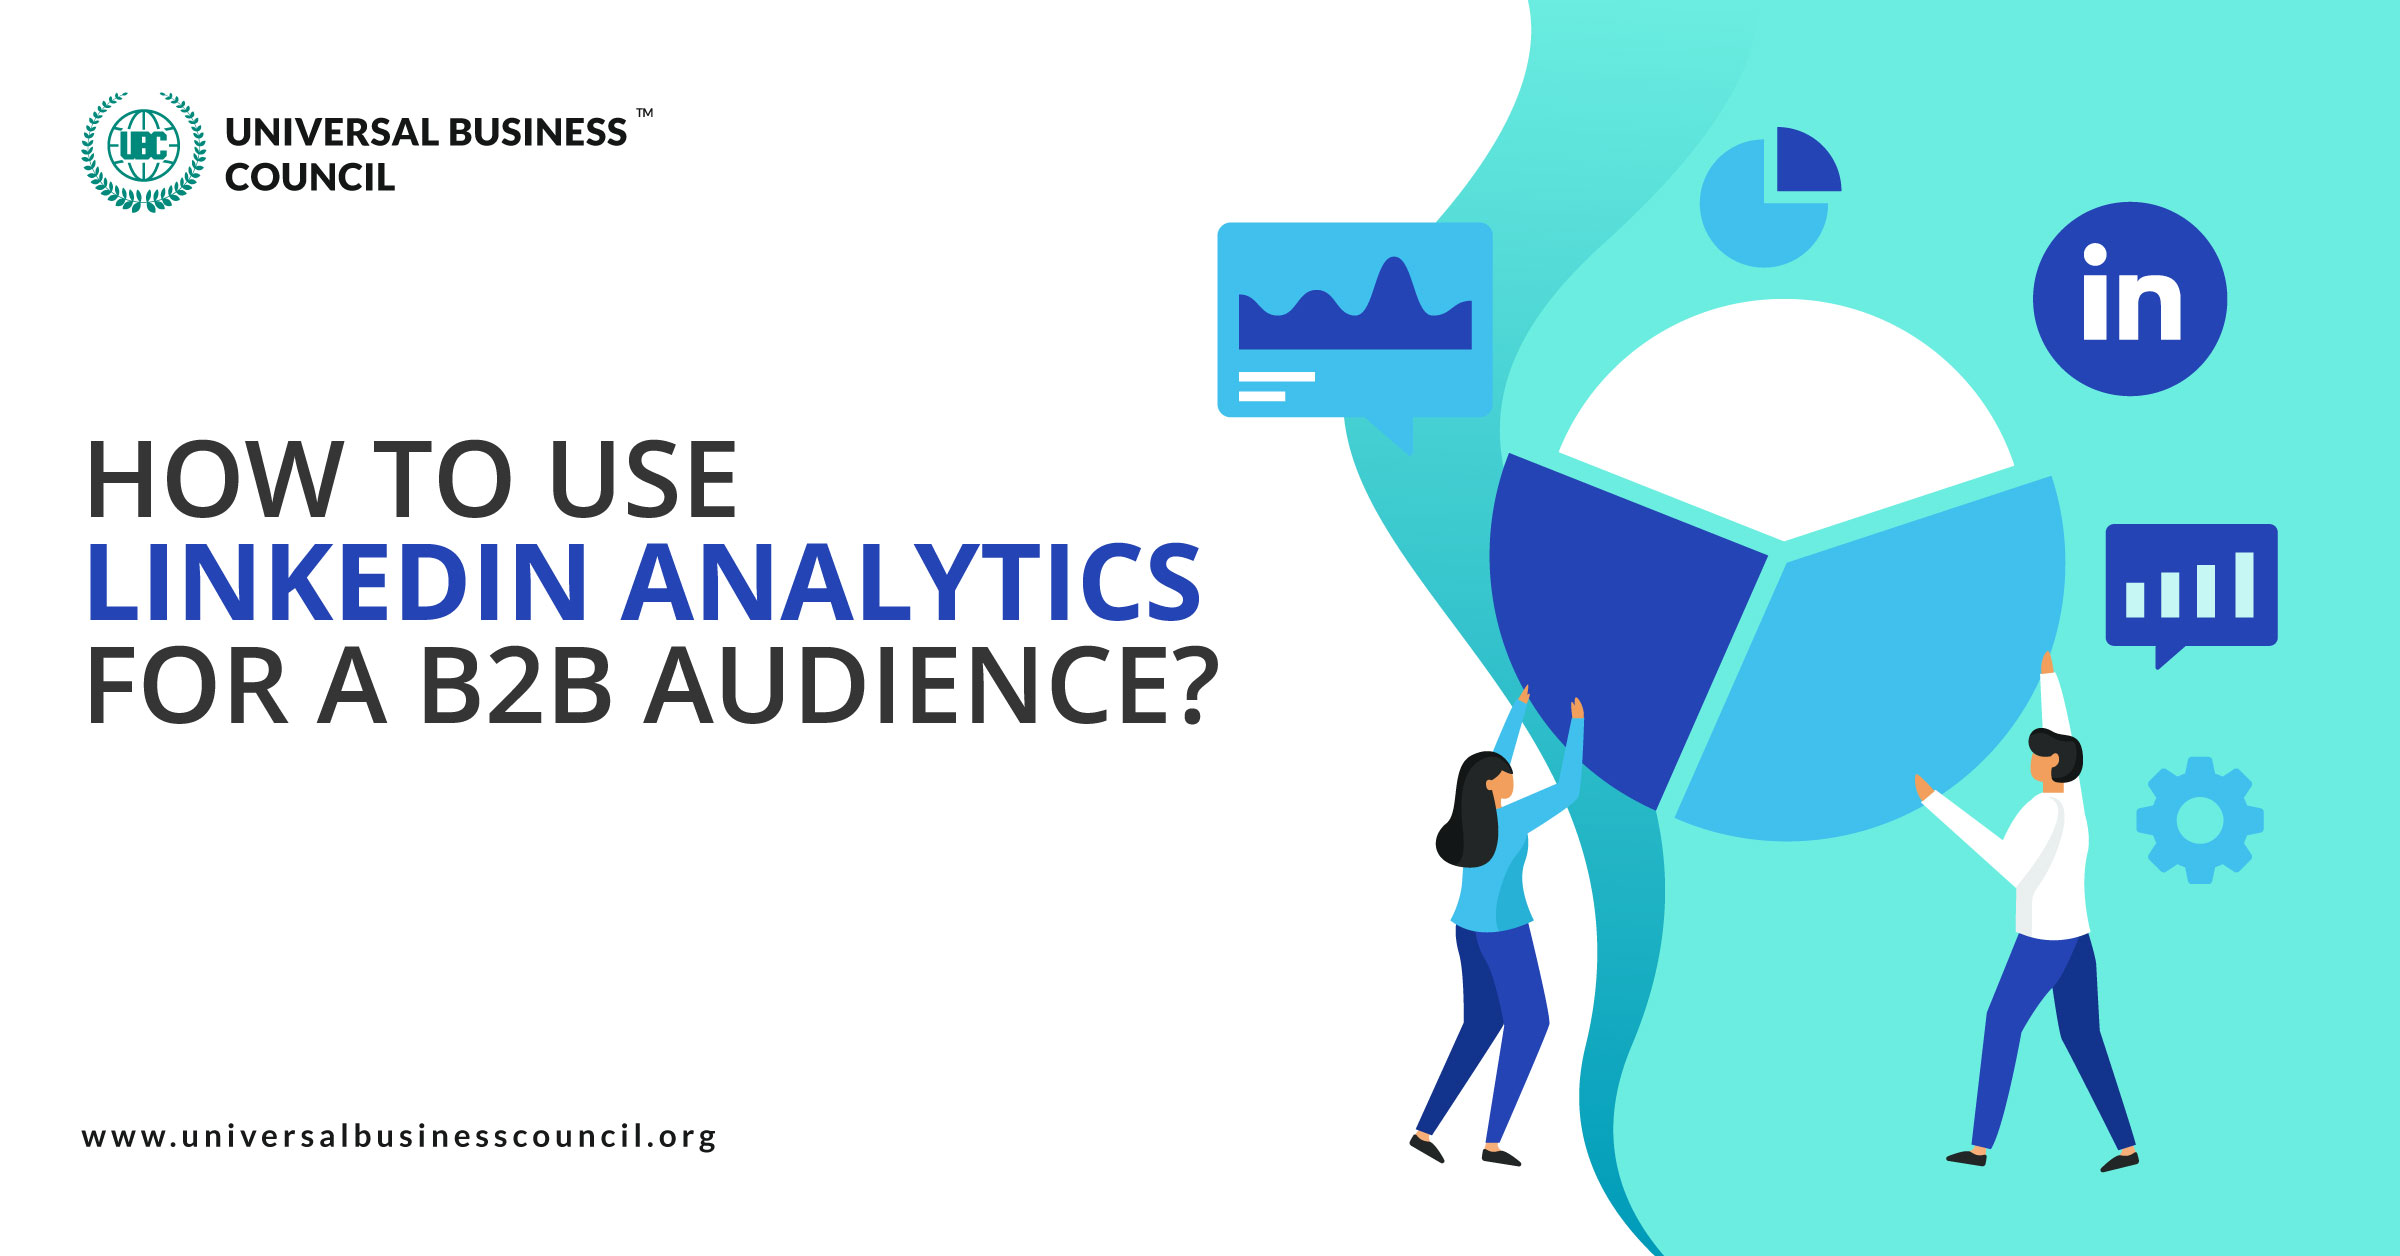 How-To-Use-LinkedIn-Analytics-for-a-B2B-Audience